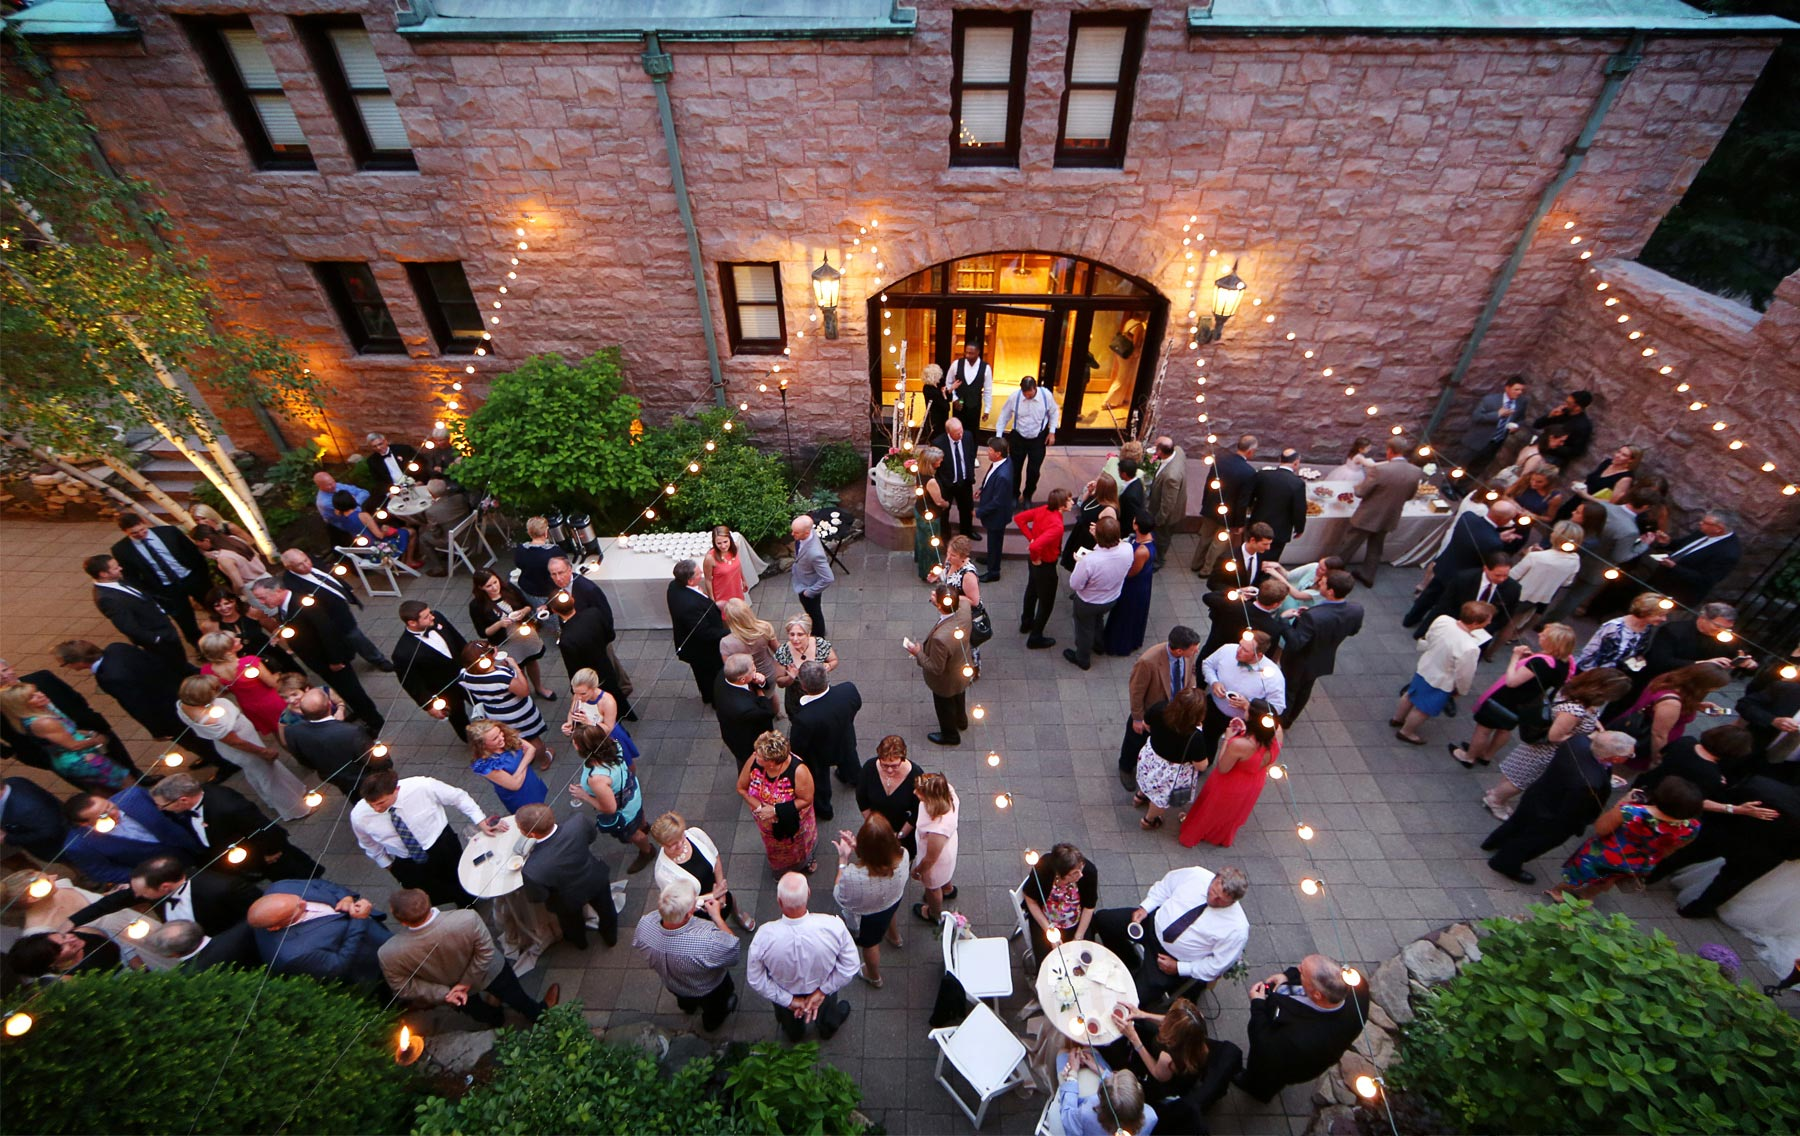 14-Minneapolis-Minnesota-Wedding-Photography-by-Vick-Photography-Van-Dusen-Mansion-Outdoor-Reception-Taryn-&-Scott.jpg